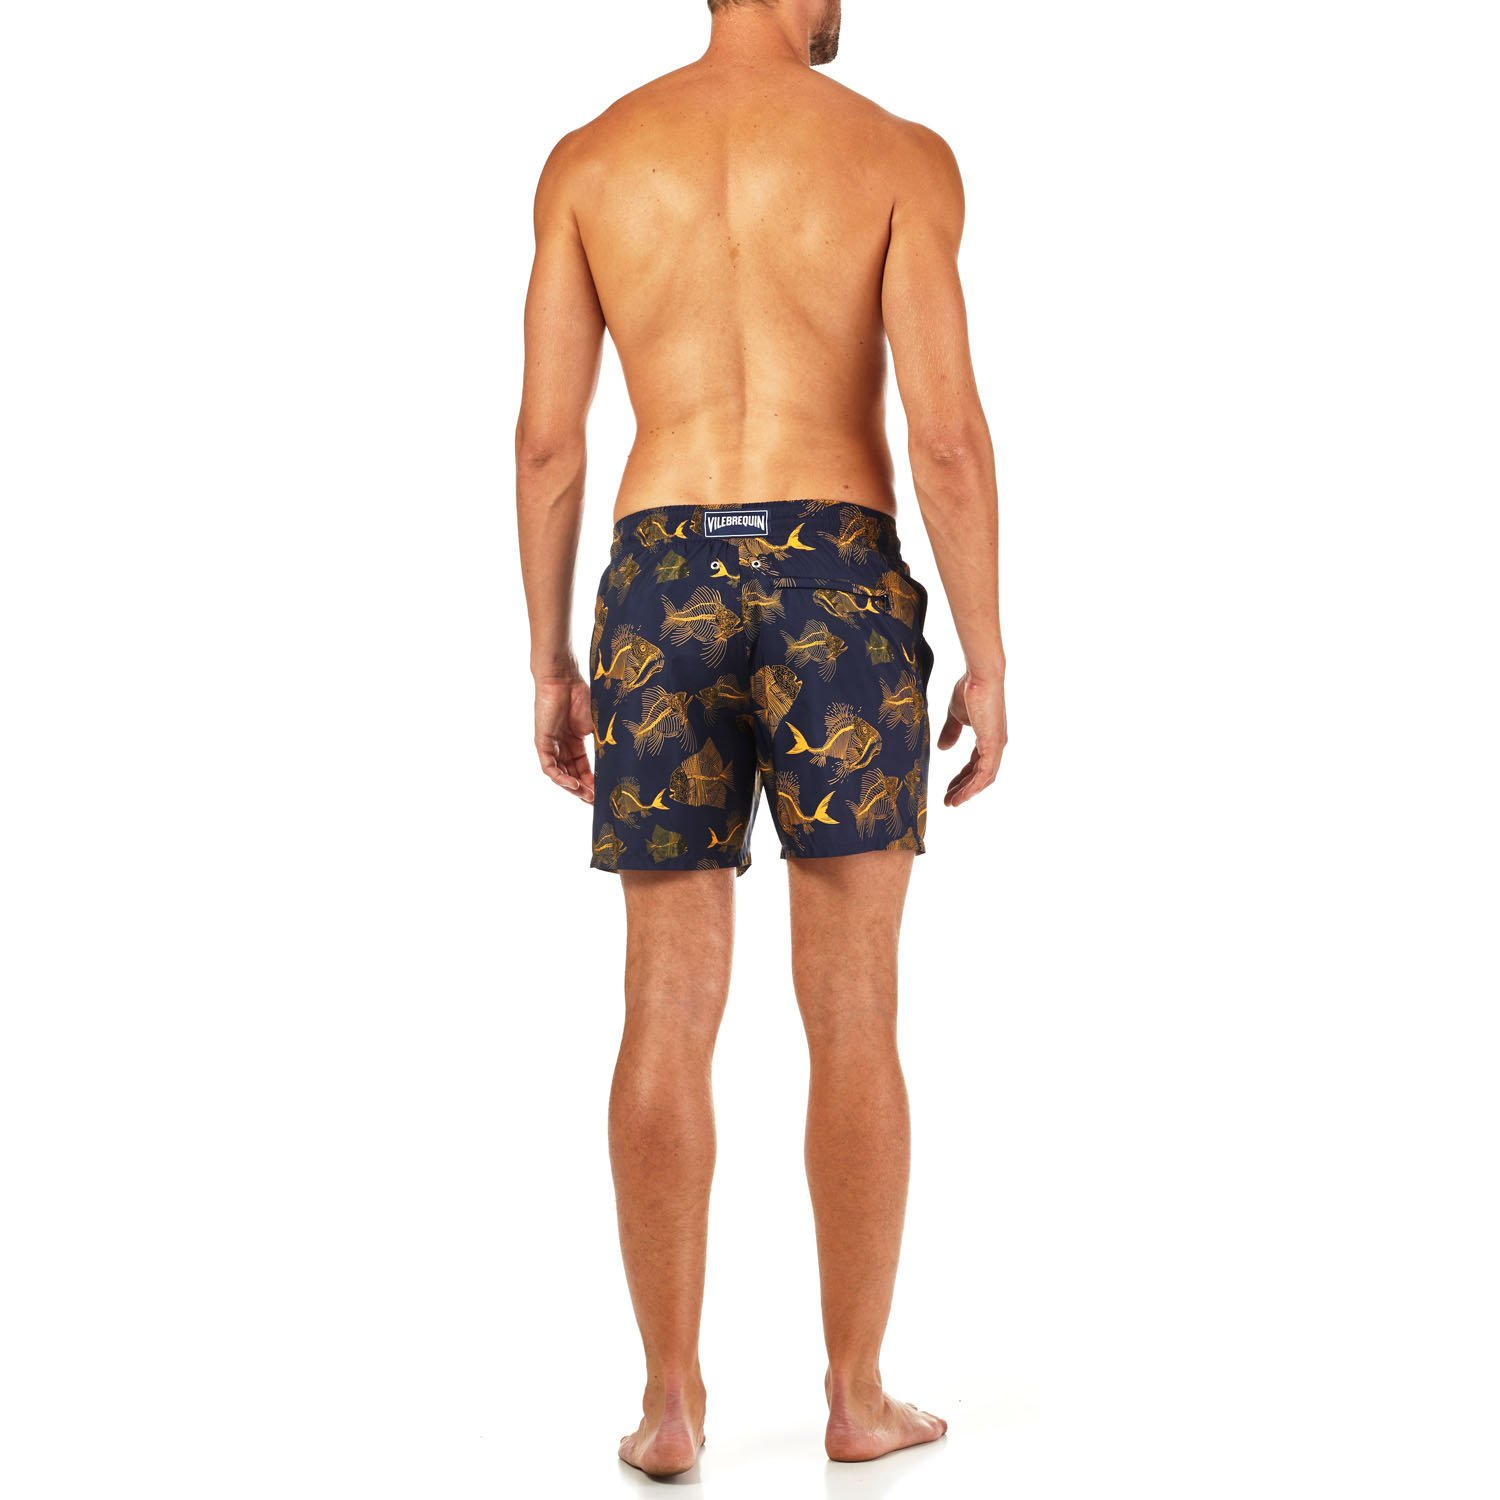 6418fd5fca Vilebrequin - Fishes Cube Swim Shorts (M, Navy): Amazon.co.uk: Clothing